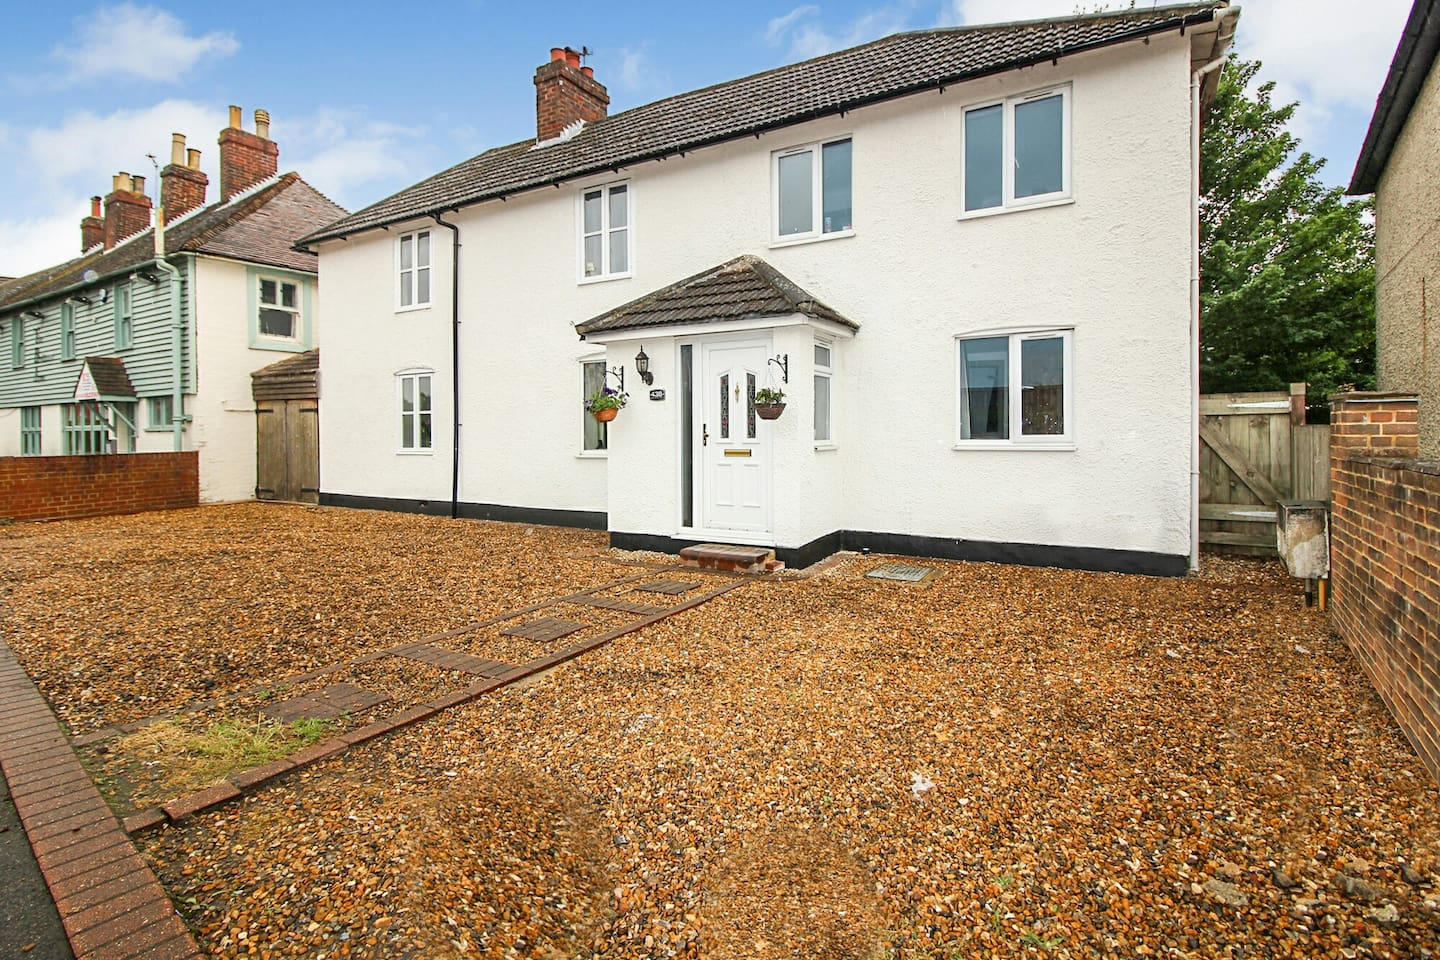 A beautiful character 1700 cottage in the Heart of New Hythe Lane, Larkfield with a large family sized kitchen, lounge/dining rooms and bedrooms. Plenty of parking space to the front and an ample garden to relax in.